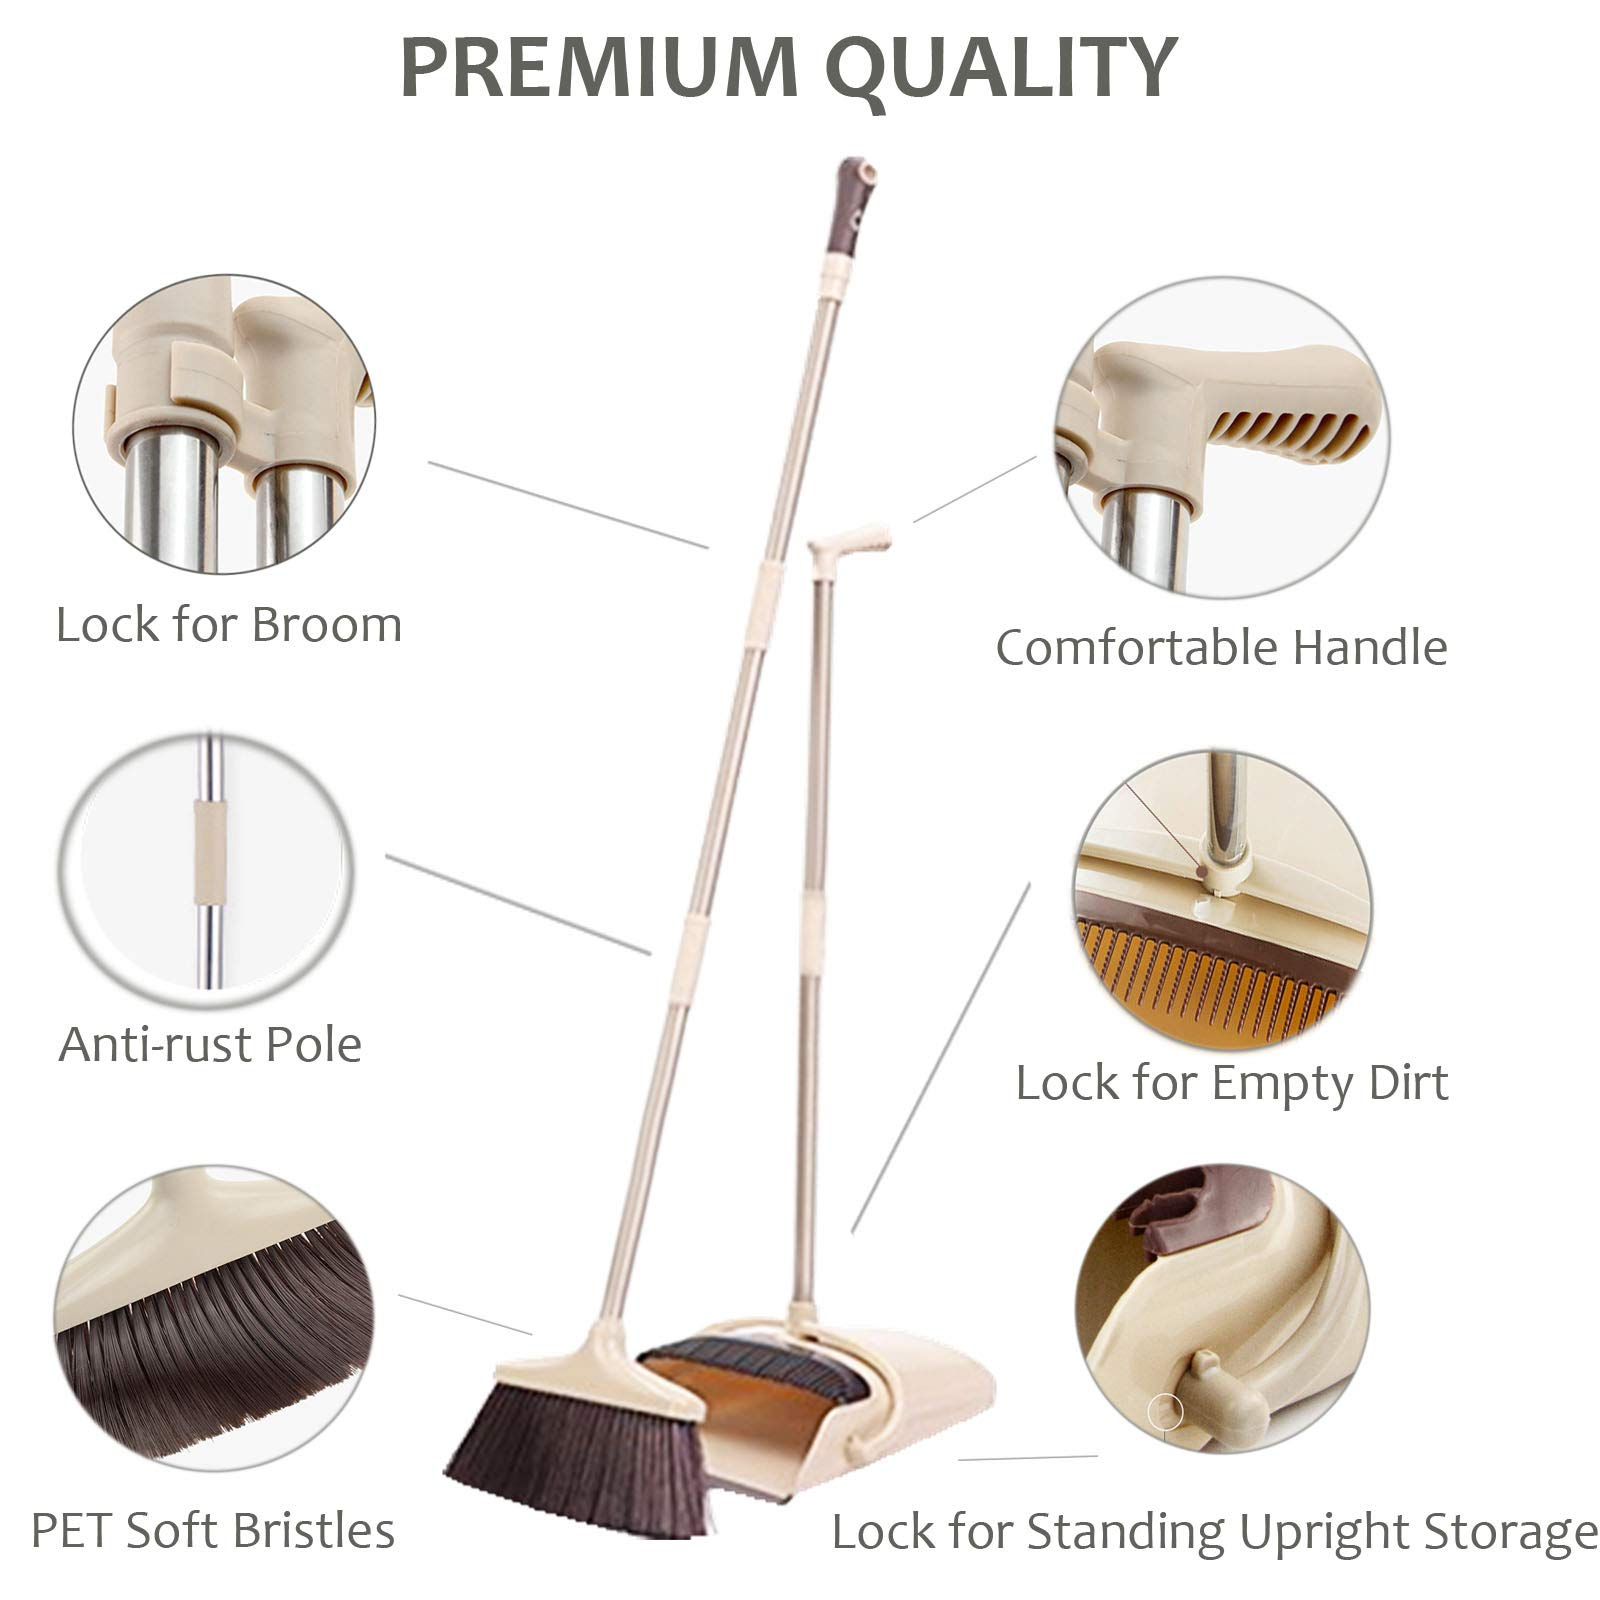 Broom and Dustpan Set, 48 inch Extendable Broom Standing Upright - Wind Proof - Foldable Sweep Set with Soft Bristles & Rubber Edge & Dust Pan with Teeth, Perfect for Kitchen, Garden, Office, etc. by SerBion (Image #3)